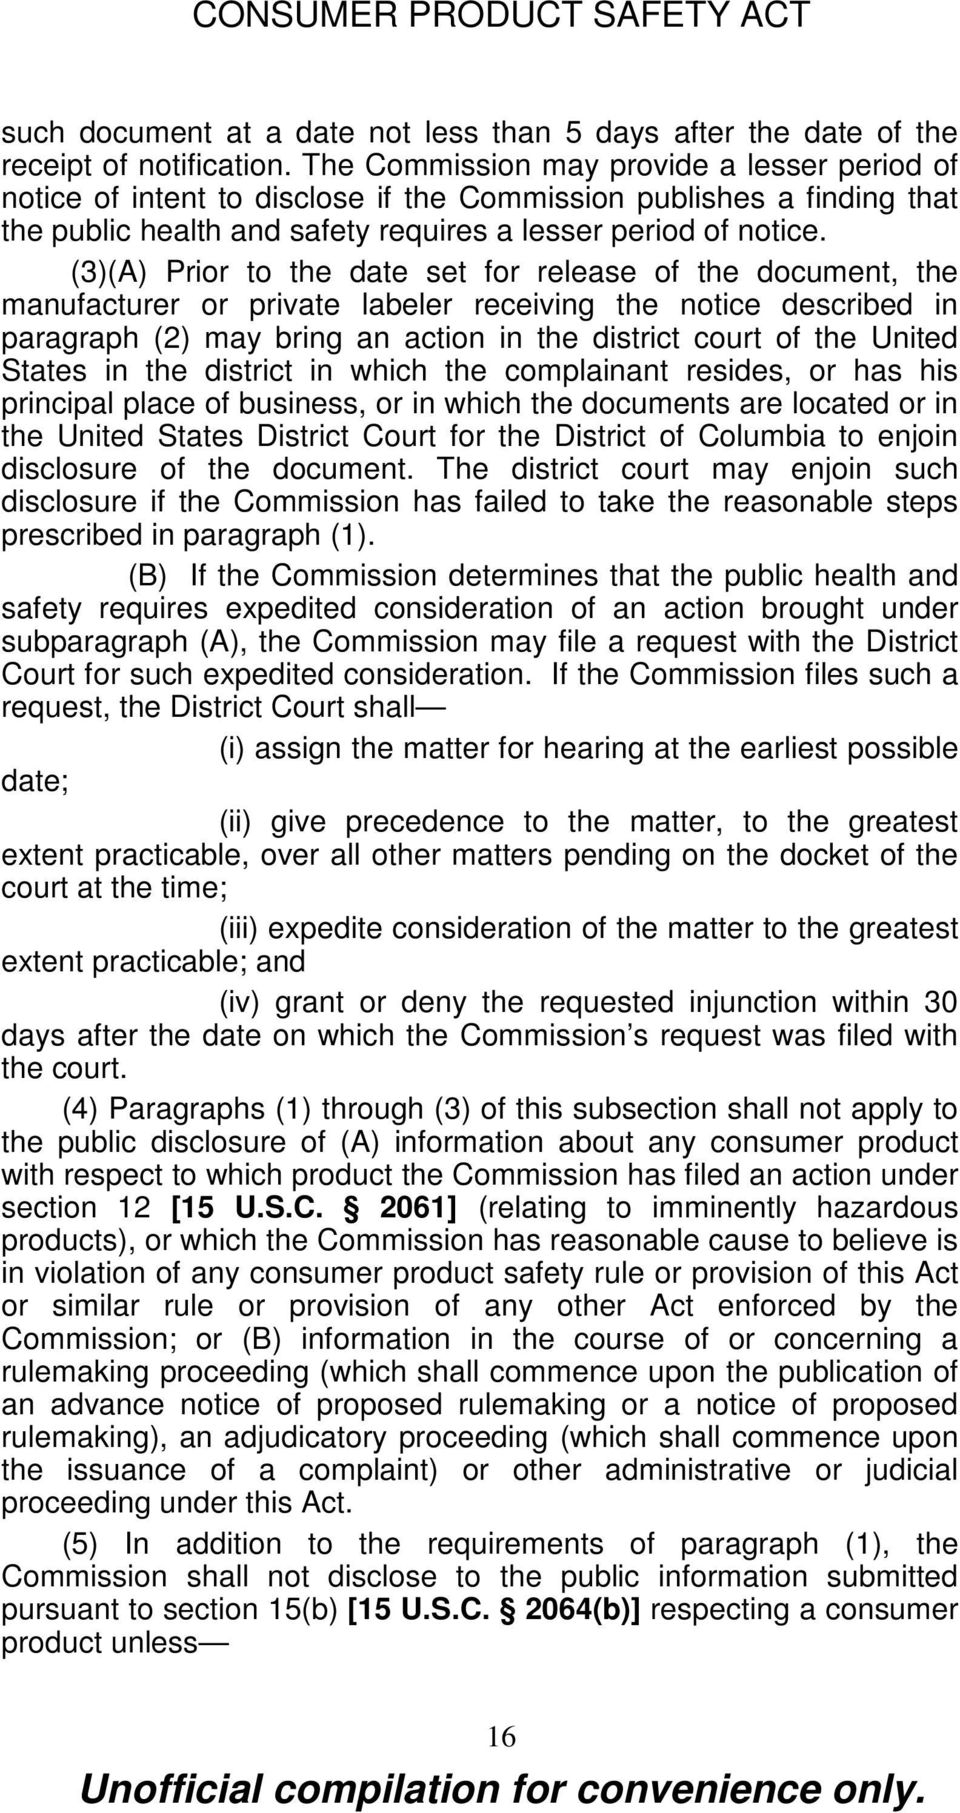 (3)(A) Prior to the date set for release of the document, the manufacturer or private labeler receiving the notice described in paragraph (2) may bring an action in the district court of the United